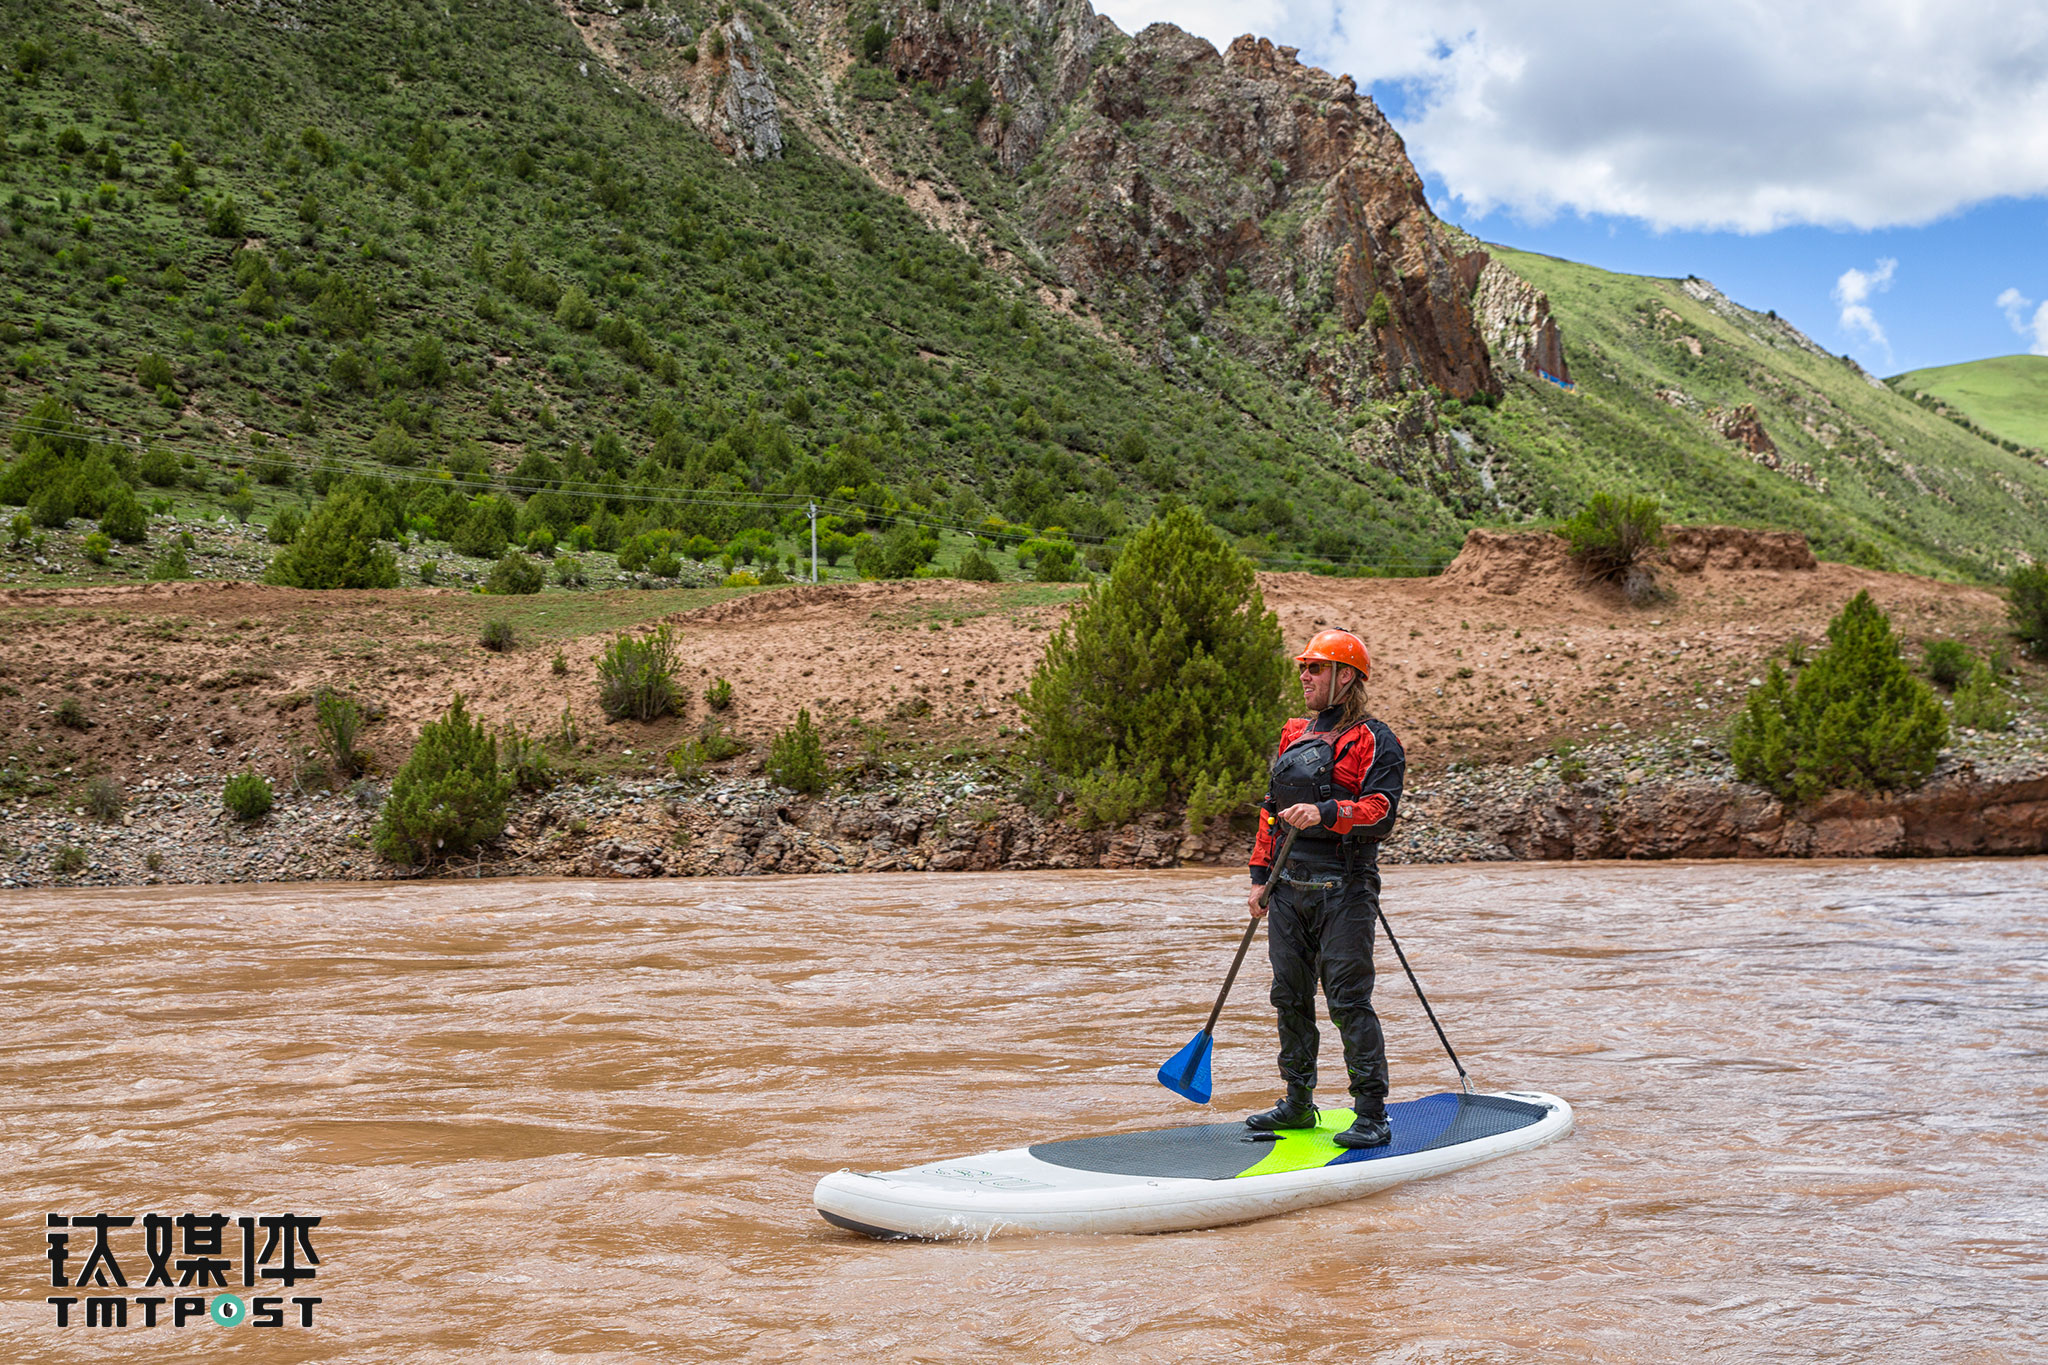 Jonah is an experienced captain from the Grand Canyon as well as an outdoor sports photographer and documentary maker. When he was first taken to a raft activity by his parents, he was only nine months ago. And this time, he is the safety director on the boats.